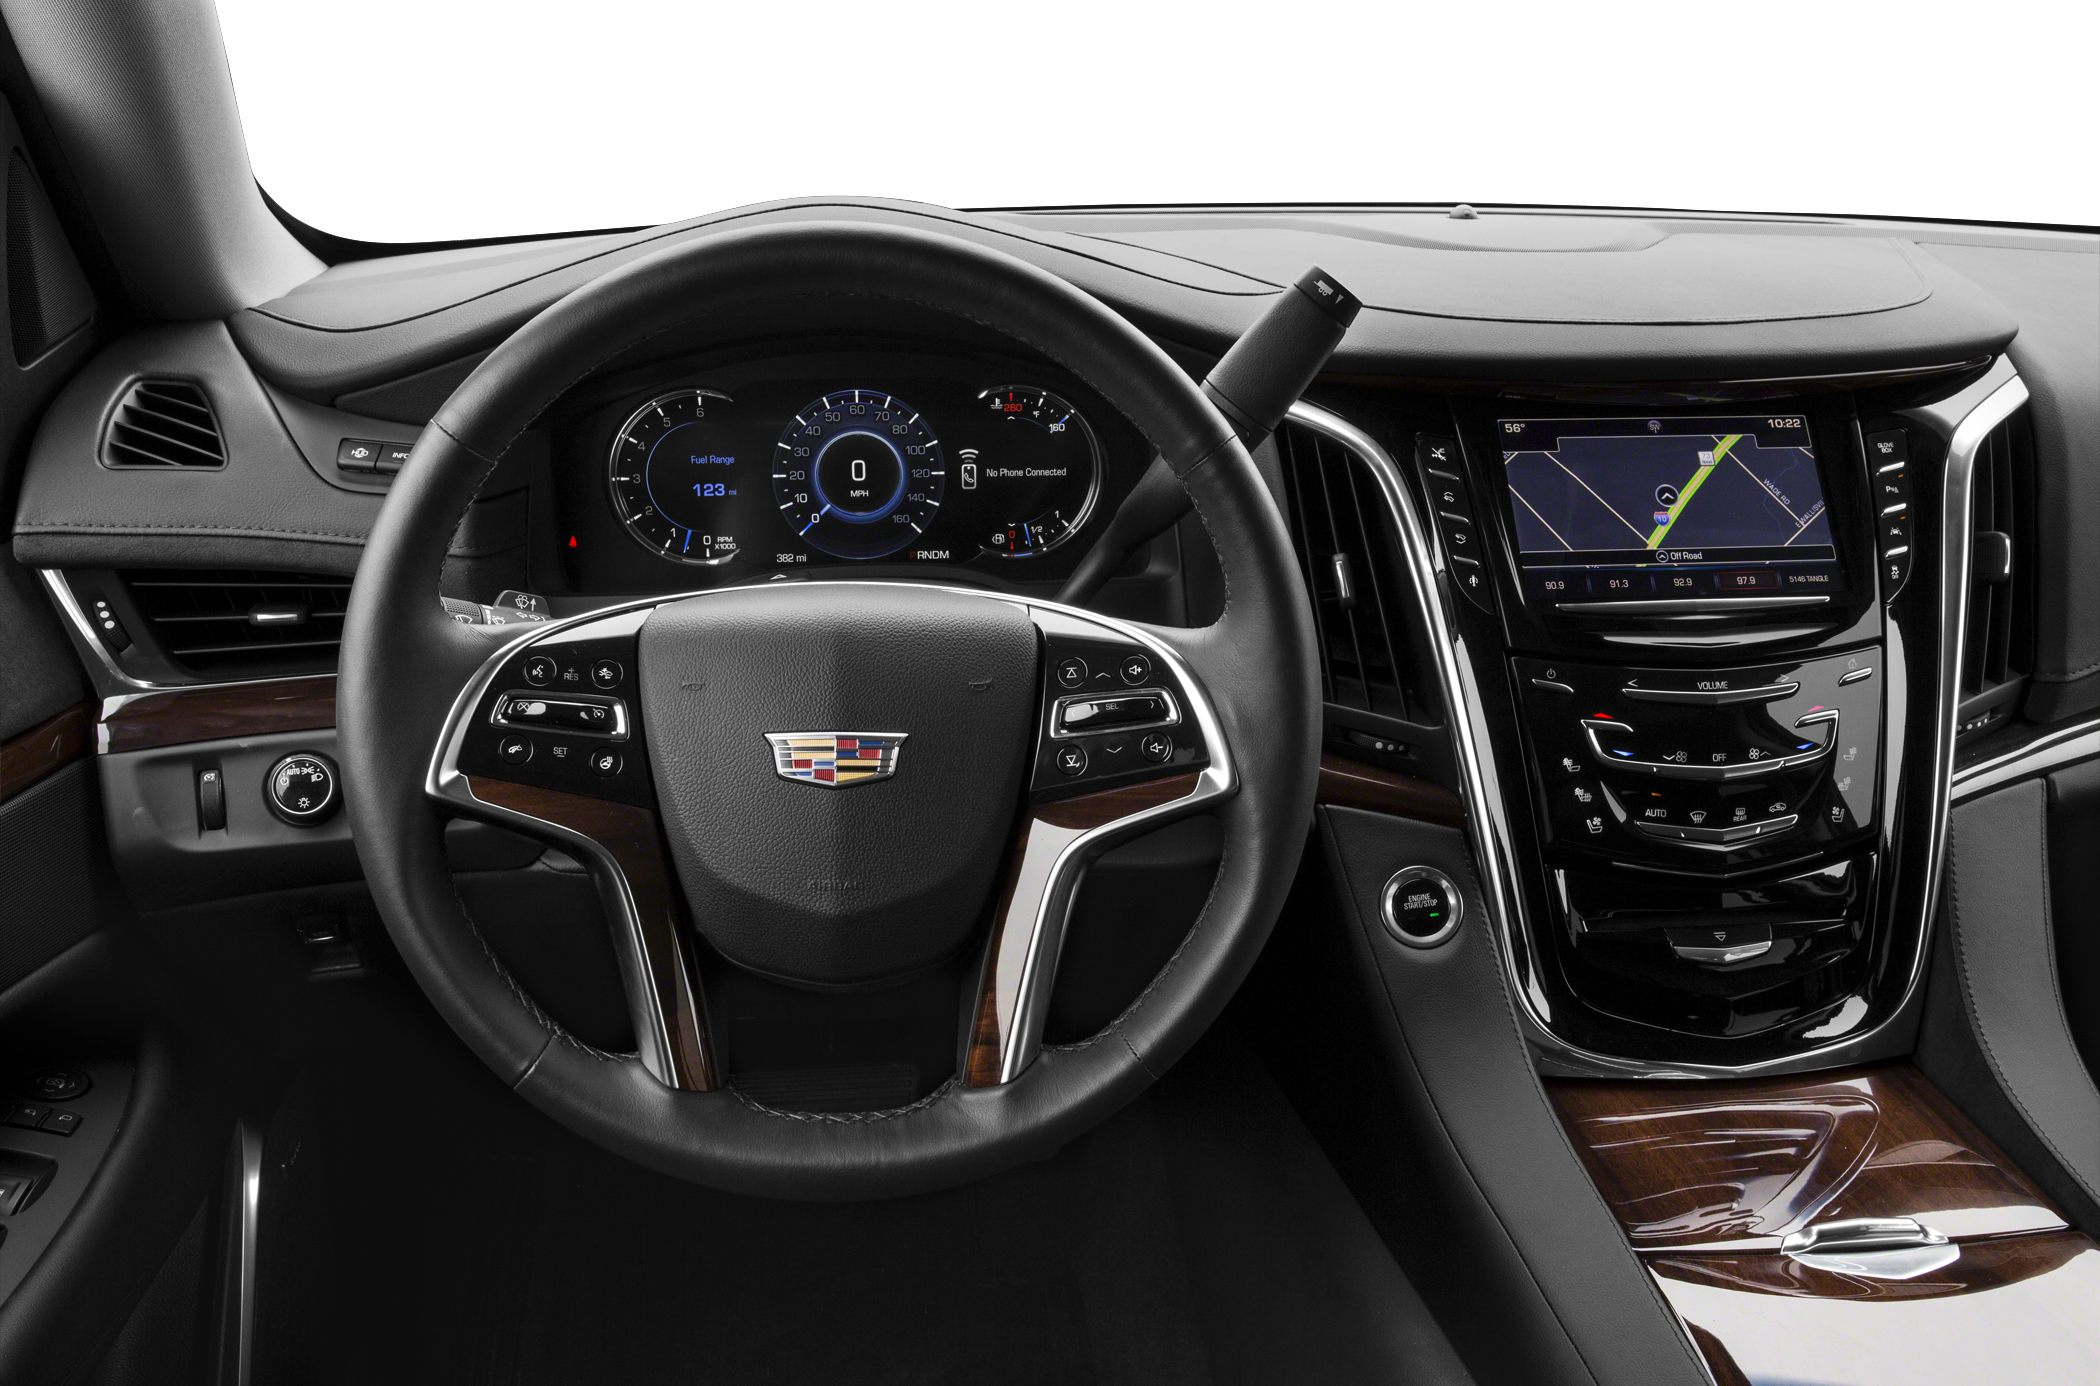 2017 cadillac escalade deals prices incentives leases overview carsdirect. Black Bedroom Furniture Sets. Home Design Ideas